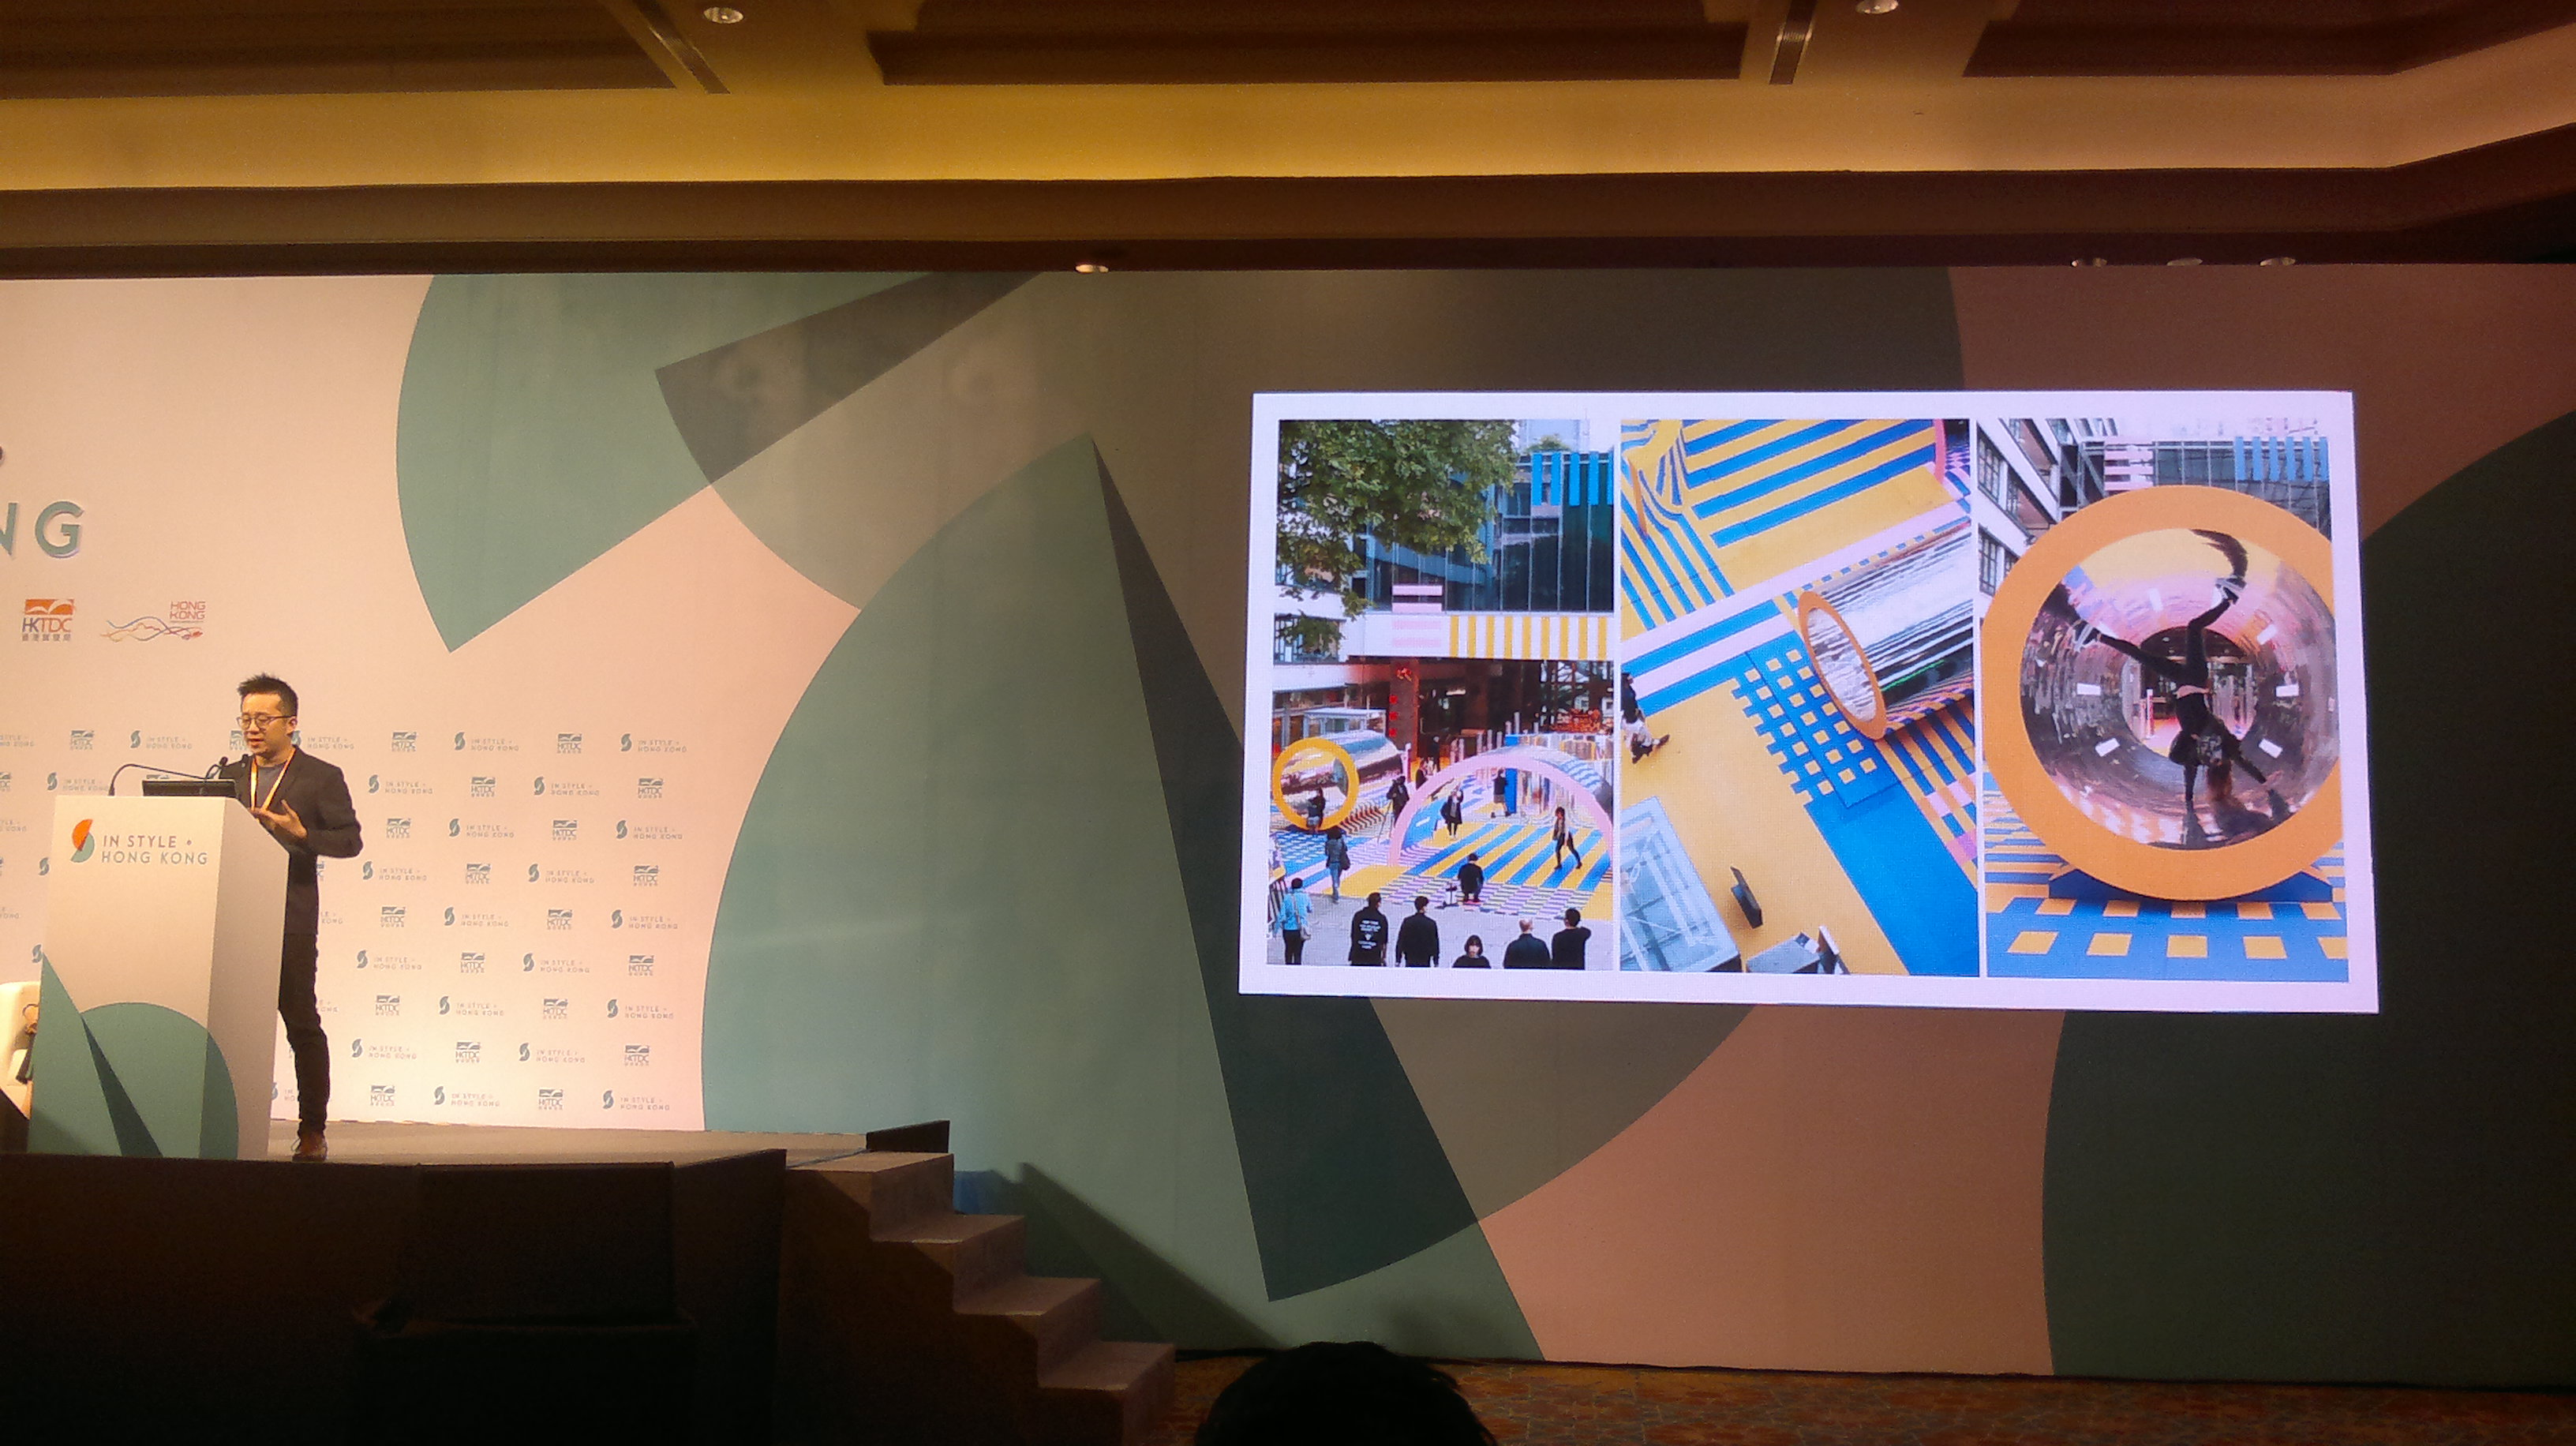 Hong Kong's business, lifestyle and partnership prospects